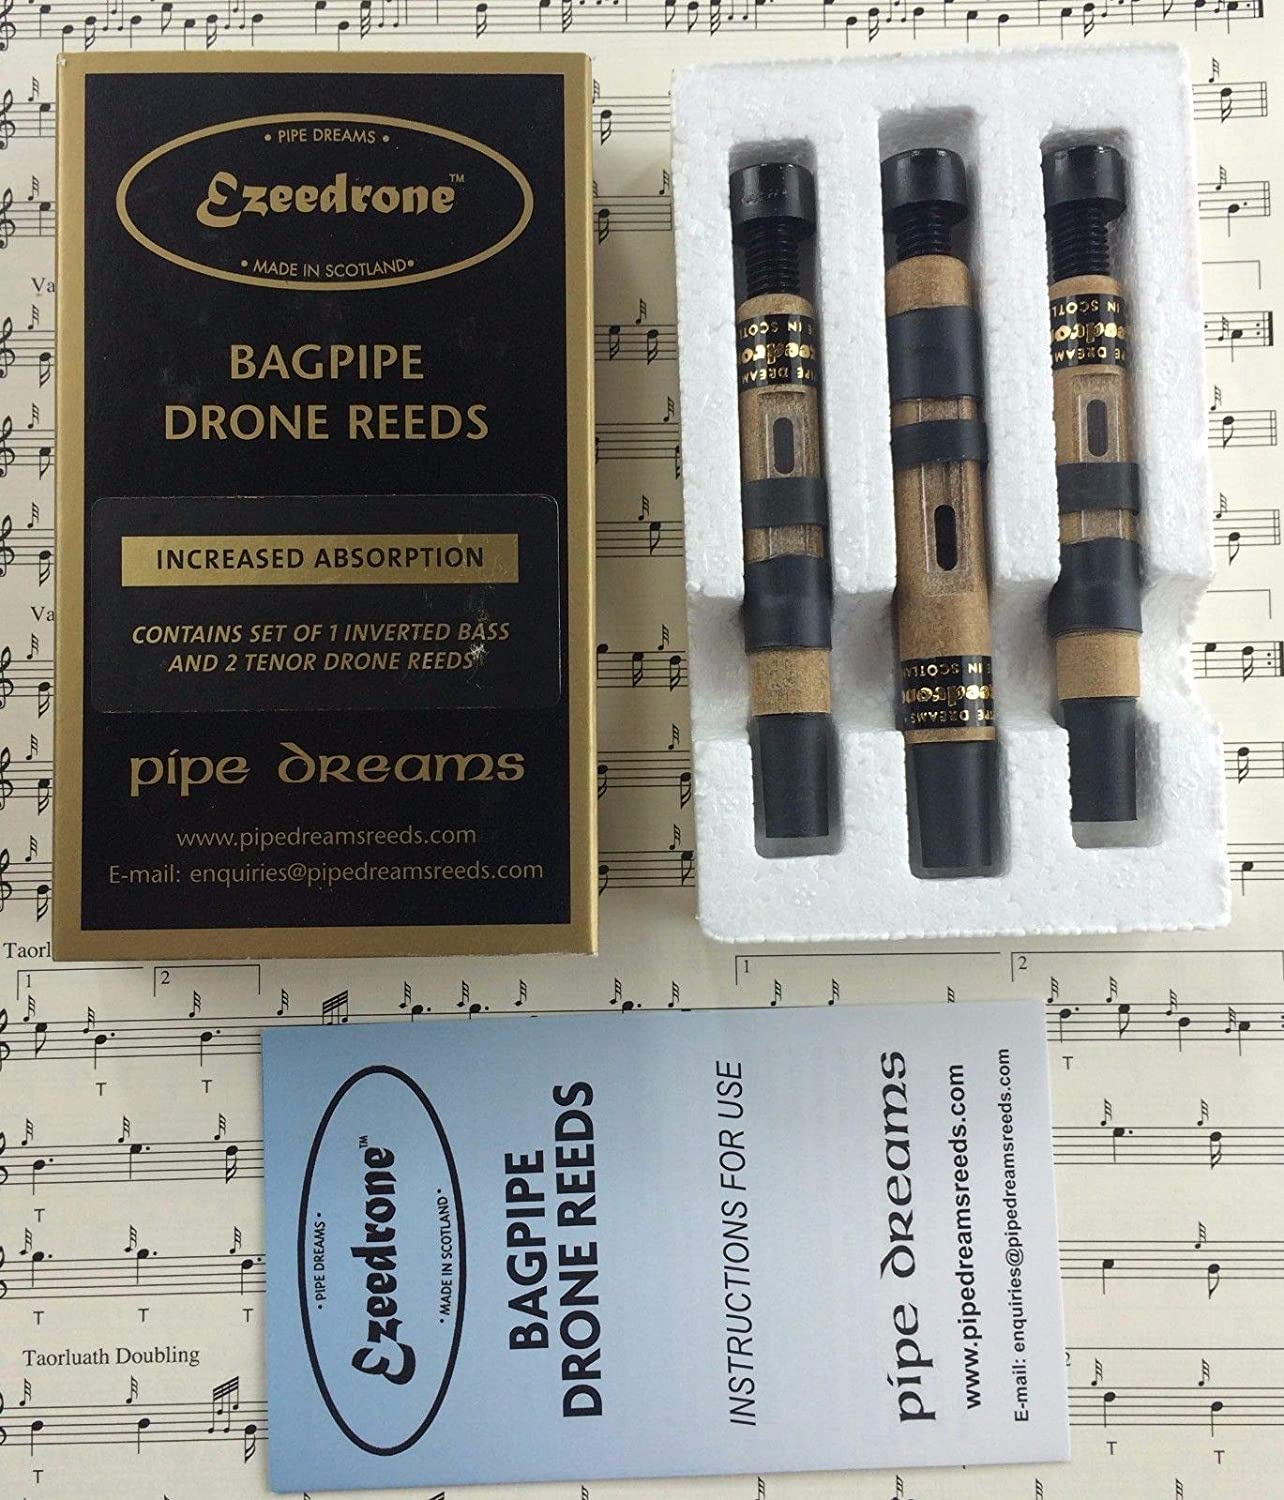 HW NEW GREAT HIGHLAND BAGPIPE SYNTHETIC DRONE REEDS//BAGPIPES DRONE REEDS PLASTIC